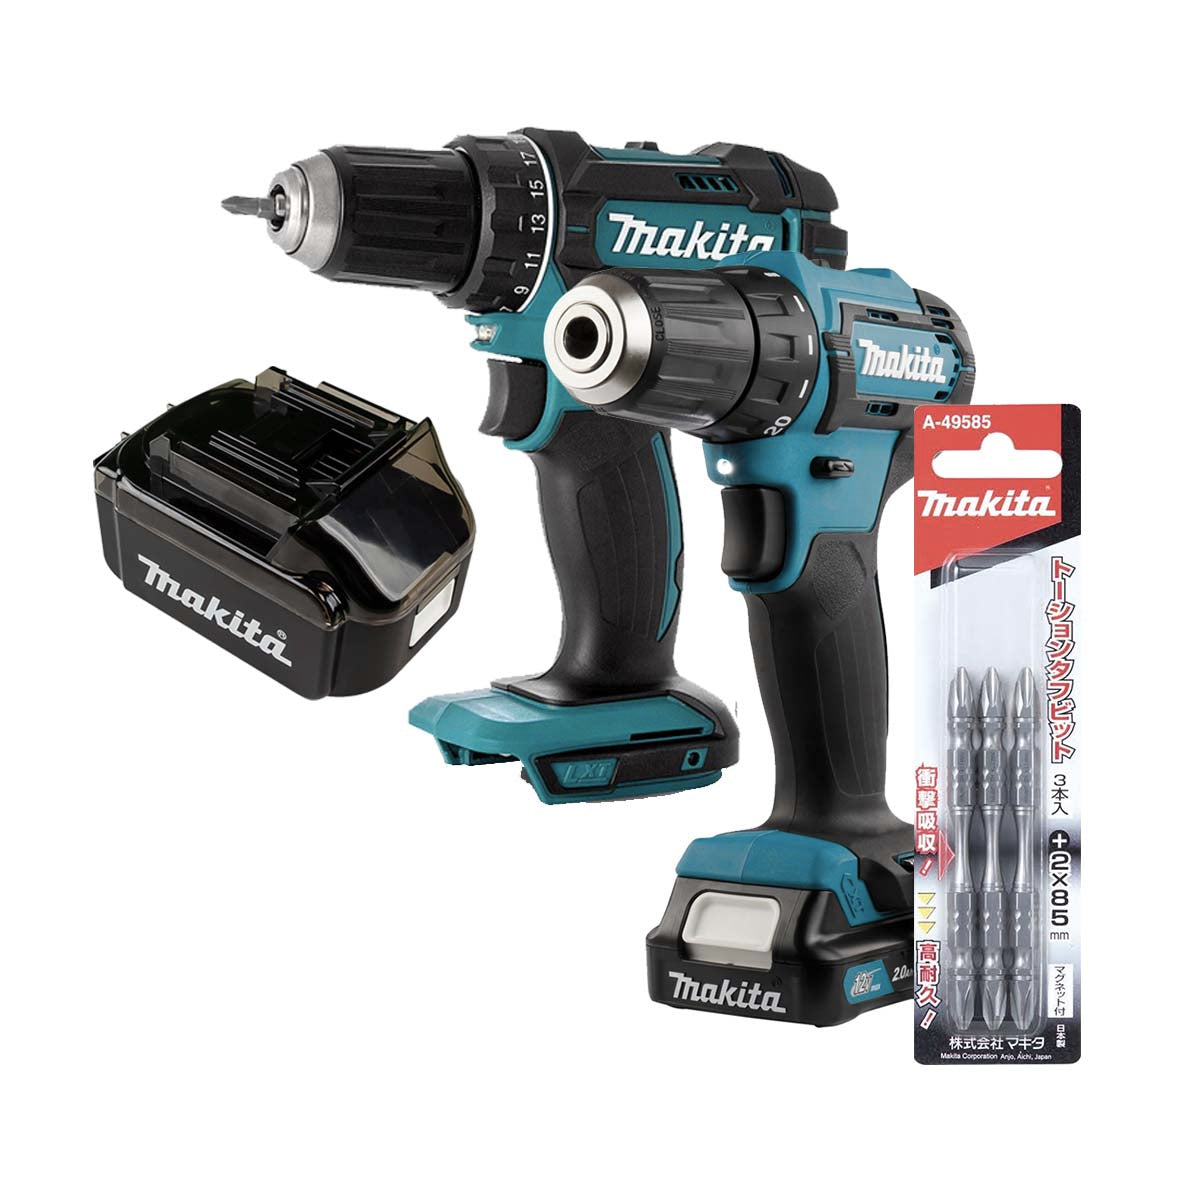 Makita DC Driver Drill 12V (DF333DNX10) - COMBO SET 1